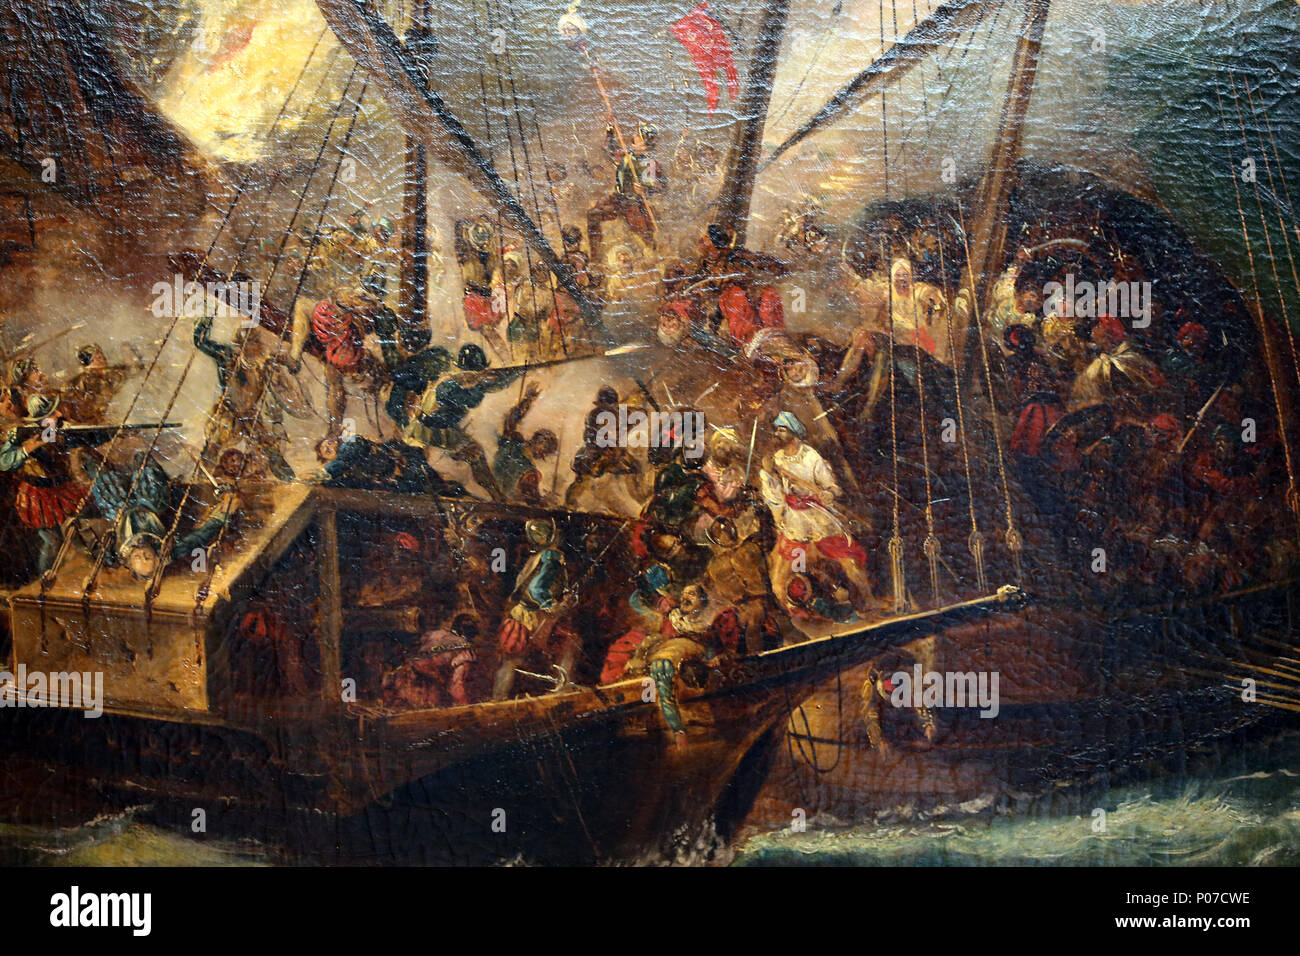 Battle of Lepanto, Octuber 1571. Holly League joined forces against Ottomans. By A.Brugada. Detail. - Stock Image